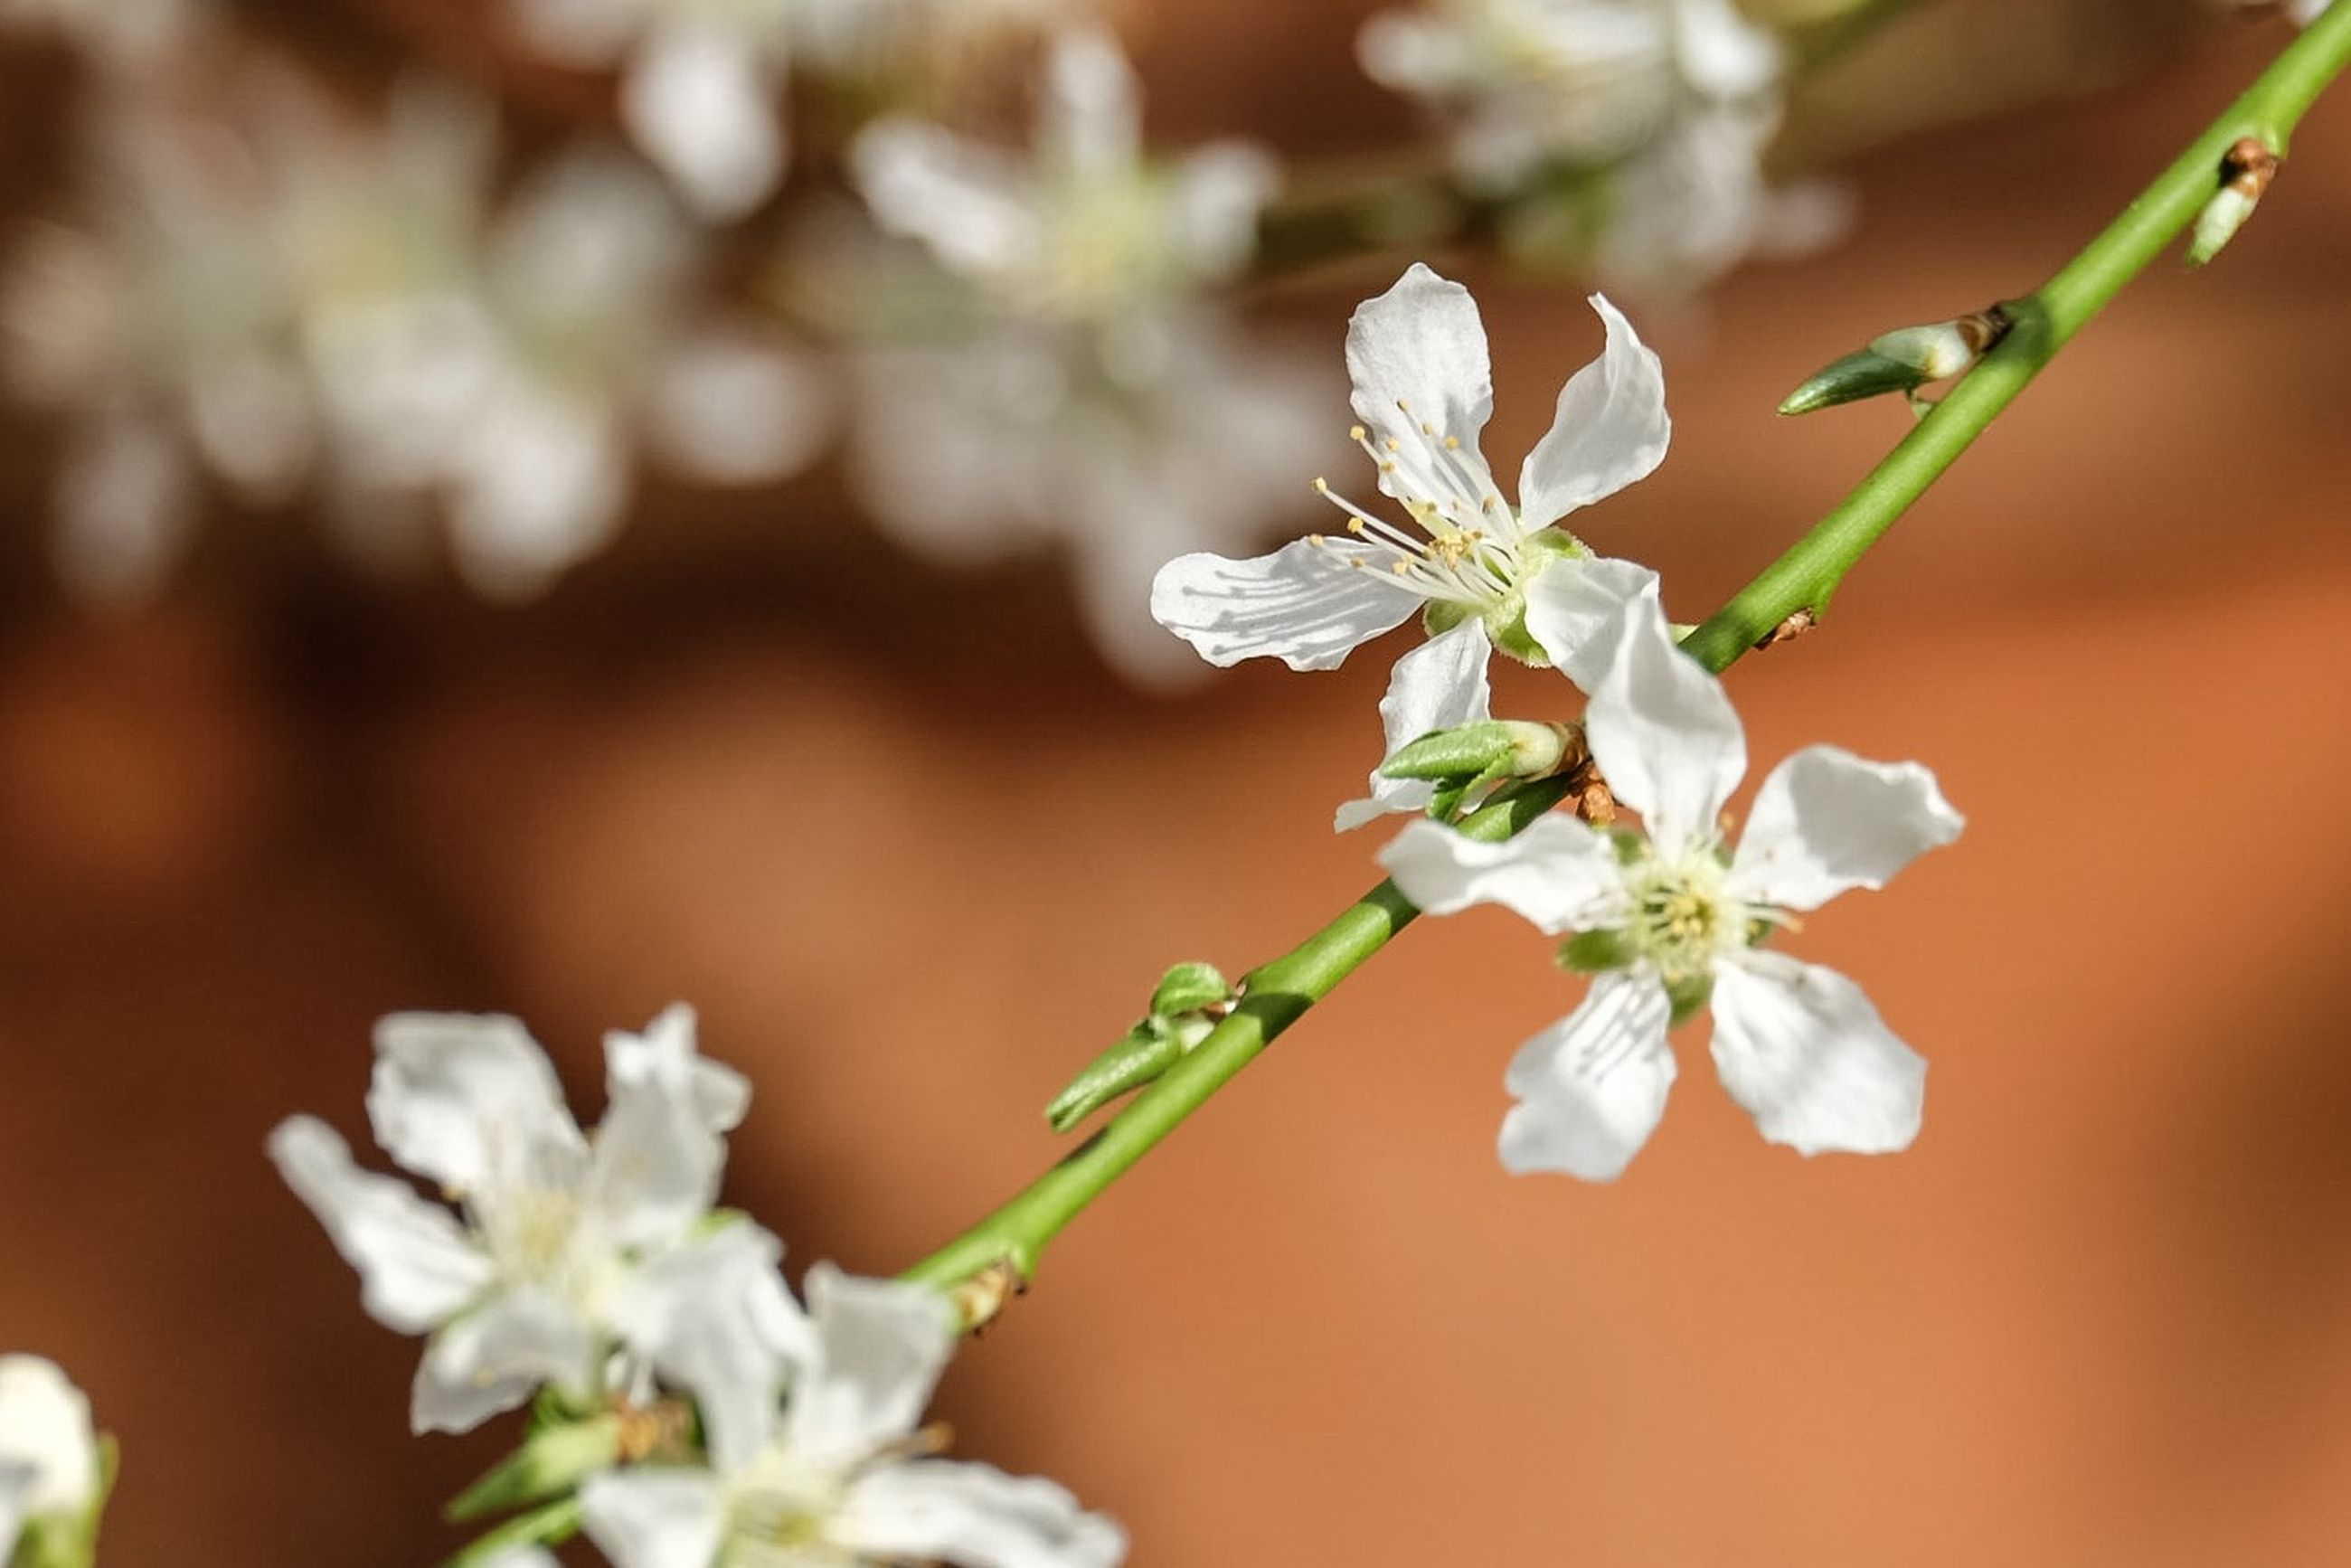 flower, white color, freshness, fragility, petal, focus on foreground, growth, beauty in nature, flower head, close-up, nature, blooming, blossom, stem, in bloom, white, cherry blossom, selective focus, plant, stamen